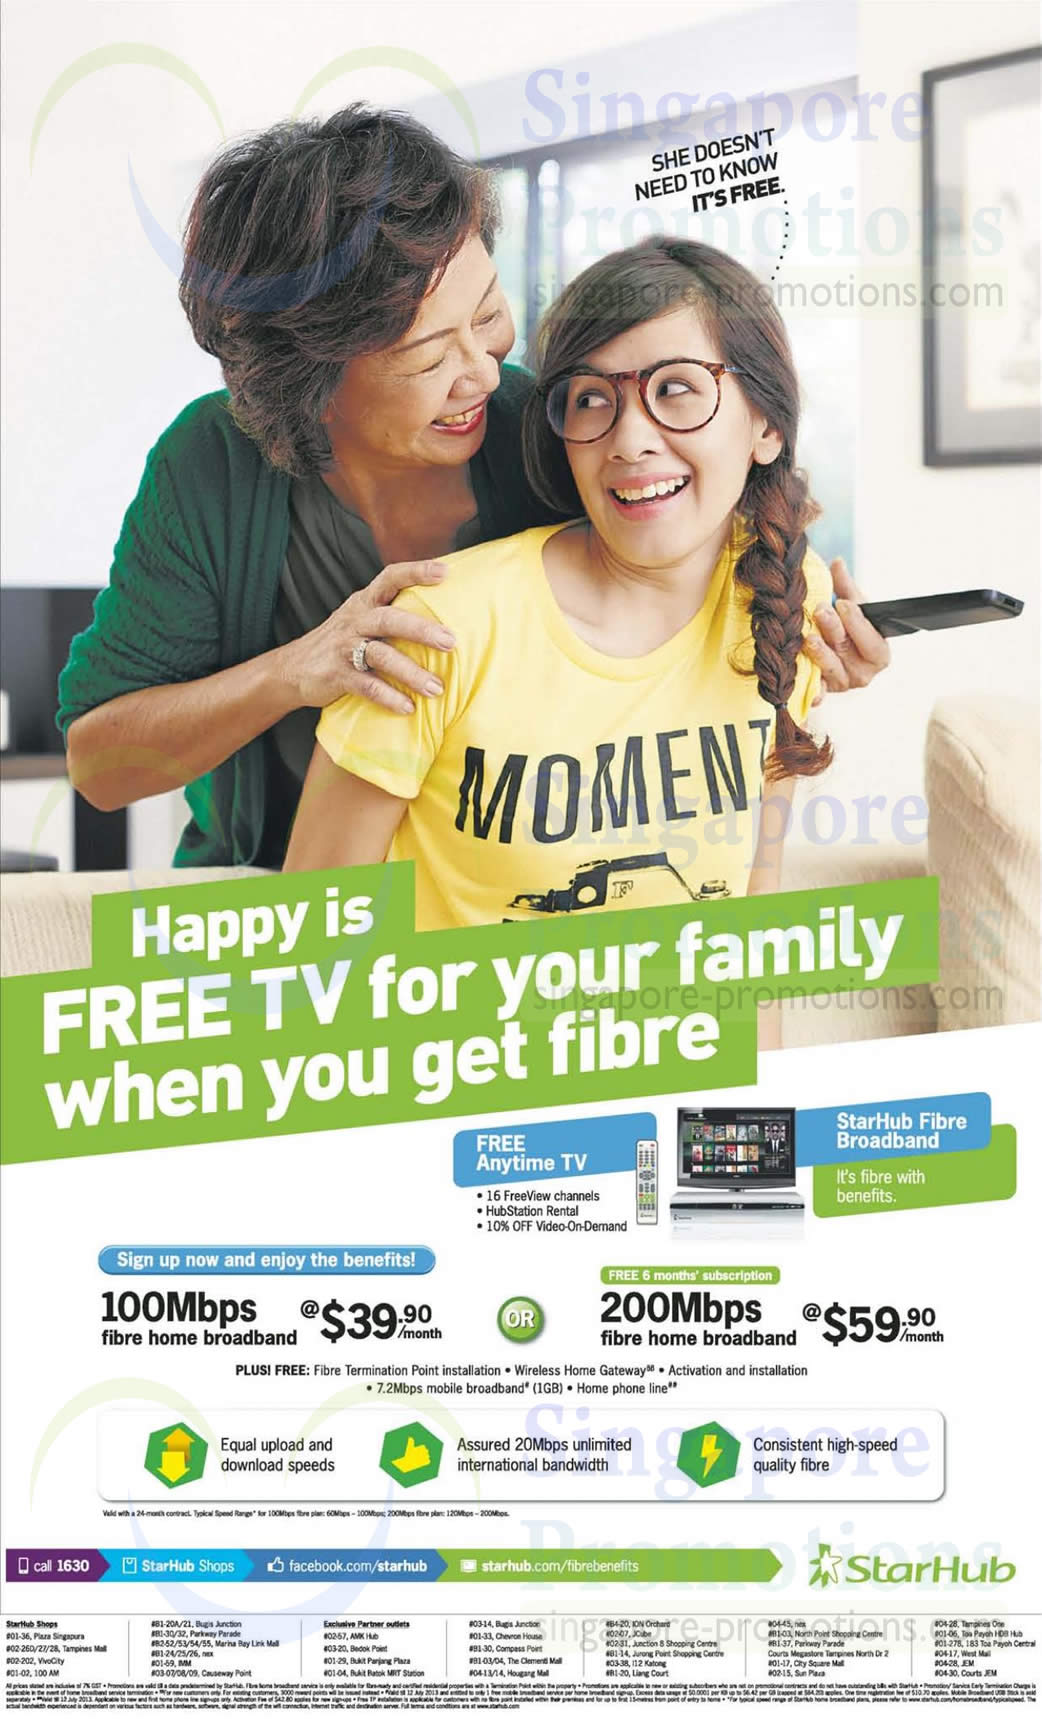 Fibre Broadband 100Mbps, 200Mbps, Free Cable TV, Anytime TV